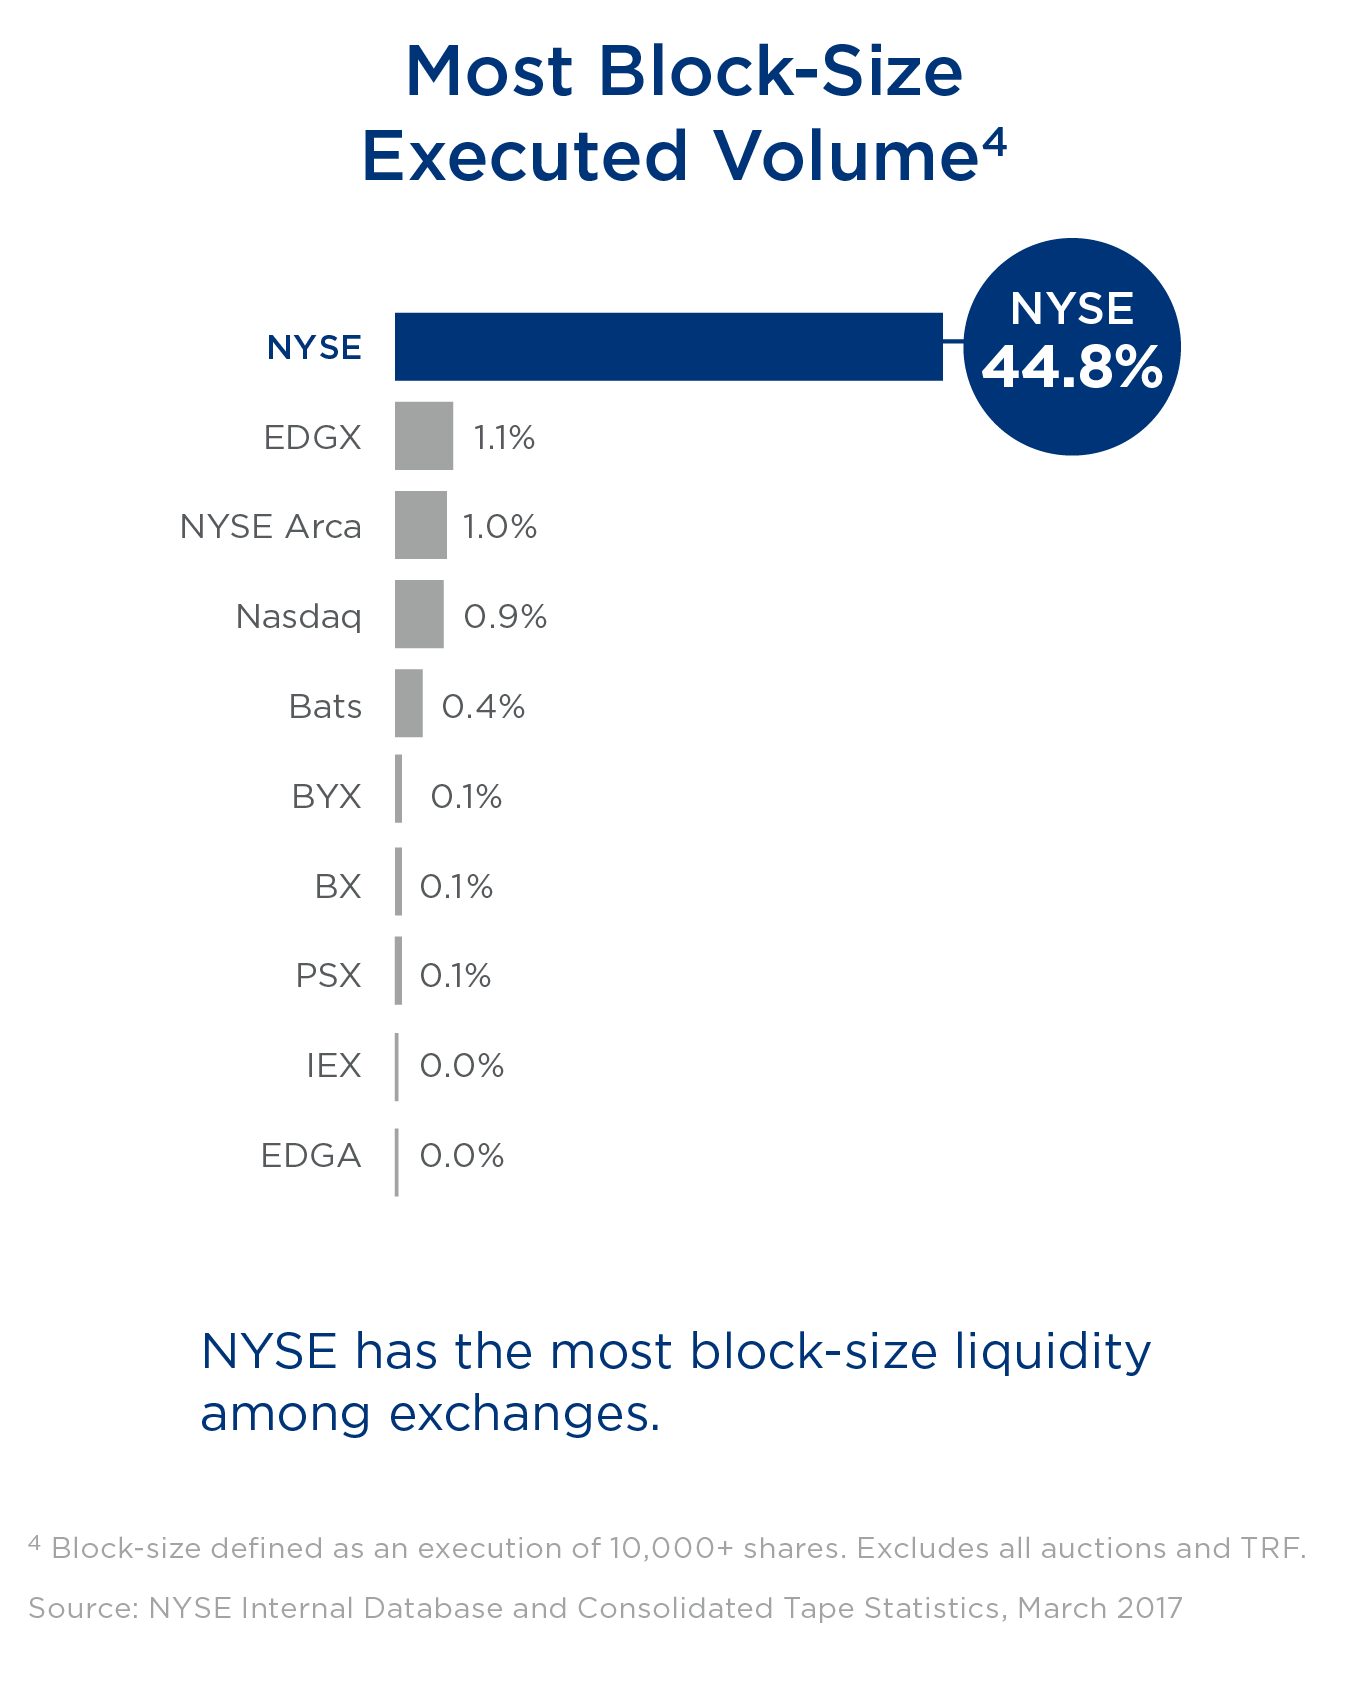 MOST BLOCK-SIZE EXECUTED VOLUME: NYSE has the most block-size liquidity among exchanges.